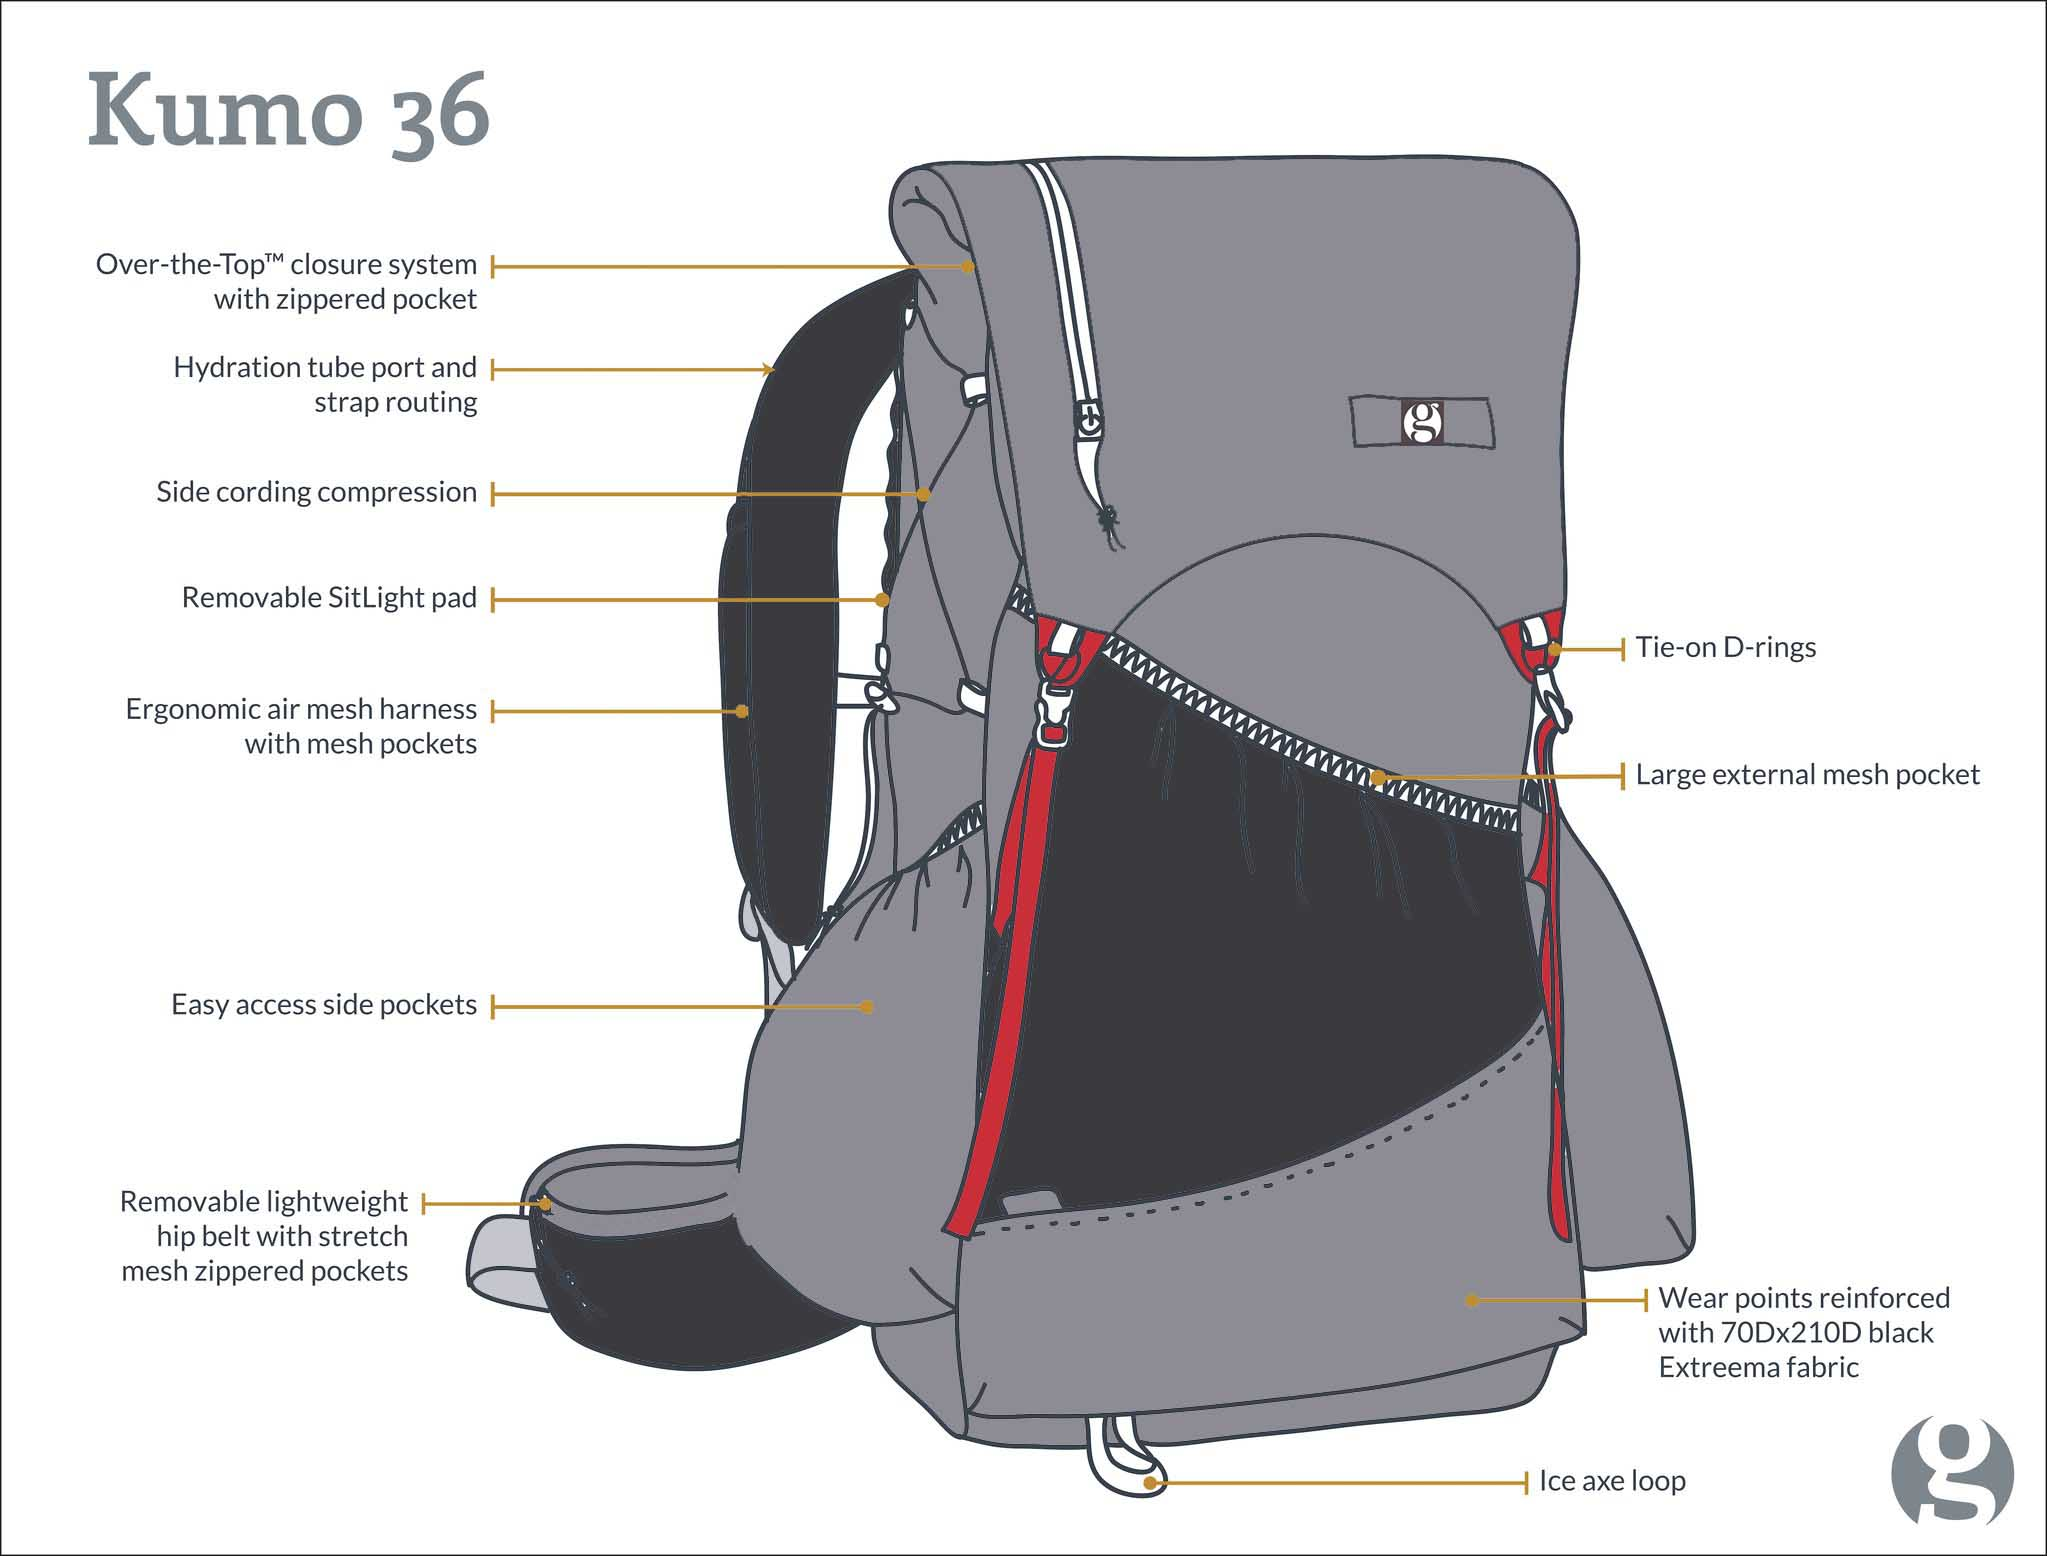 Gossamer Gear Kumo 36 features